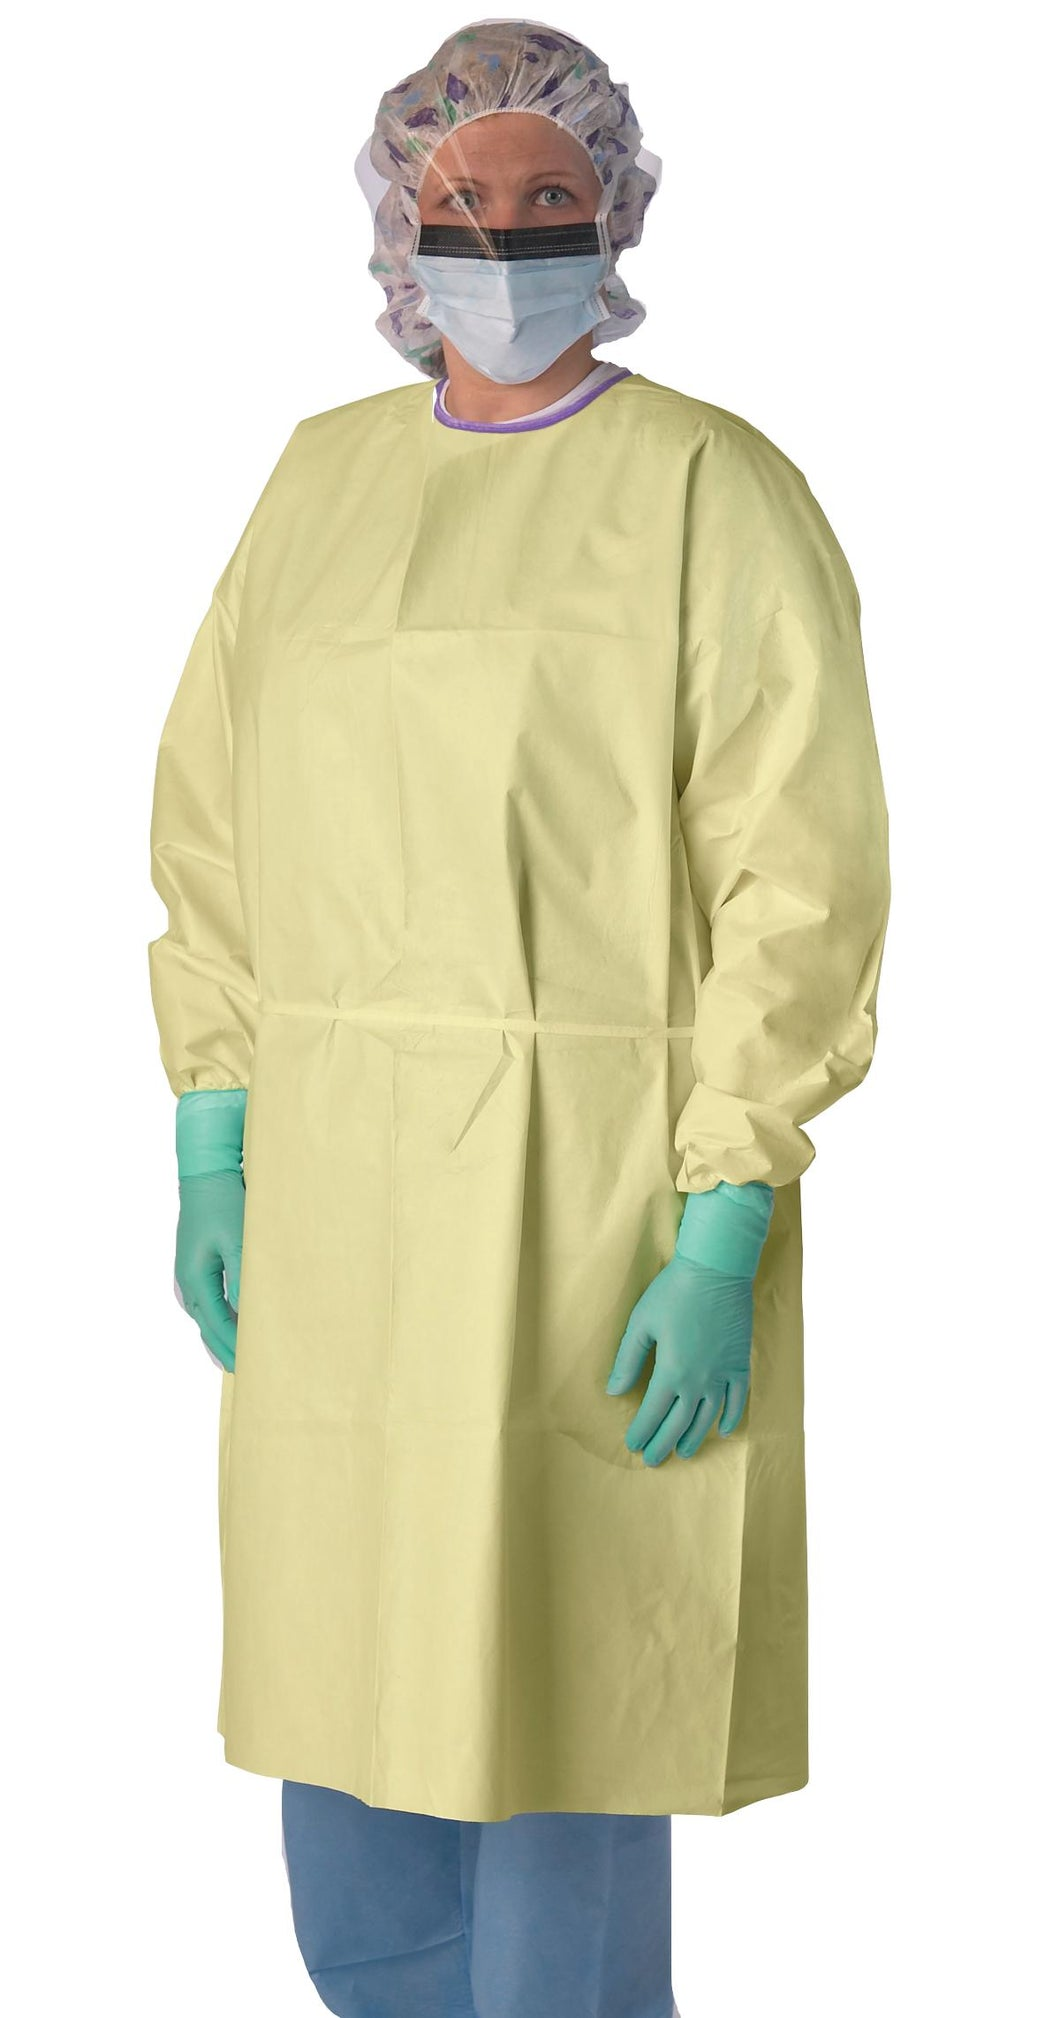 AAMI Level 3 Heavyweight Multi-Ply Isolation Gown (100-Pack)